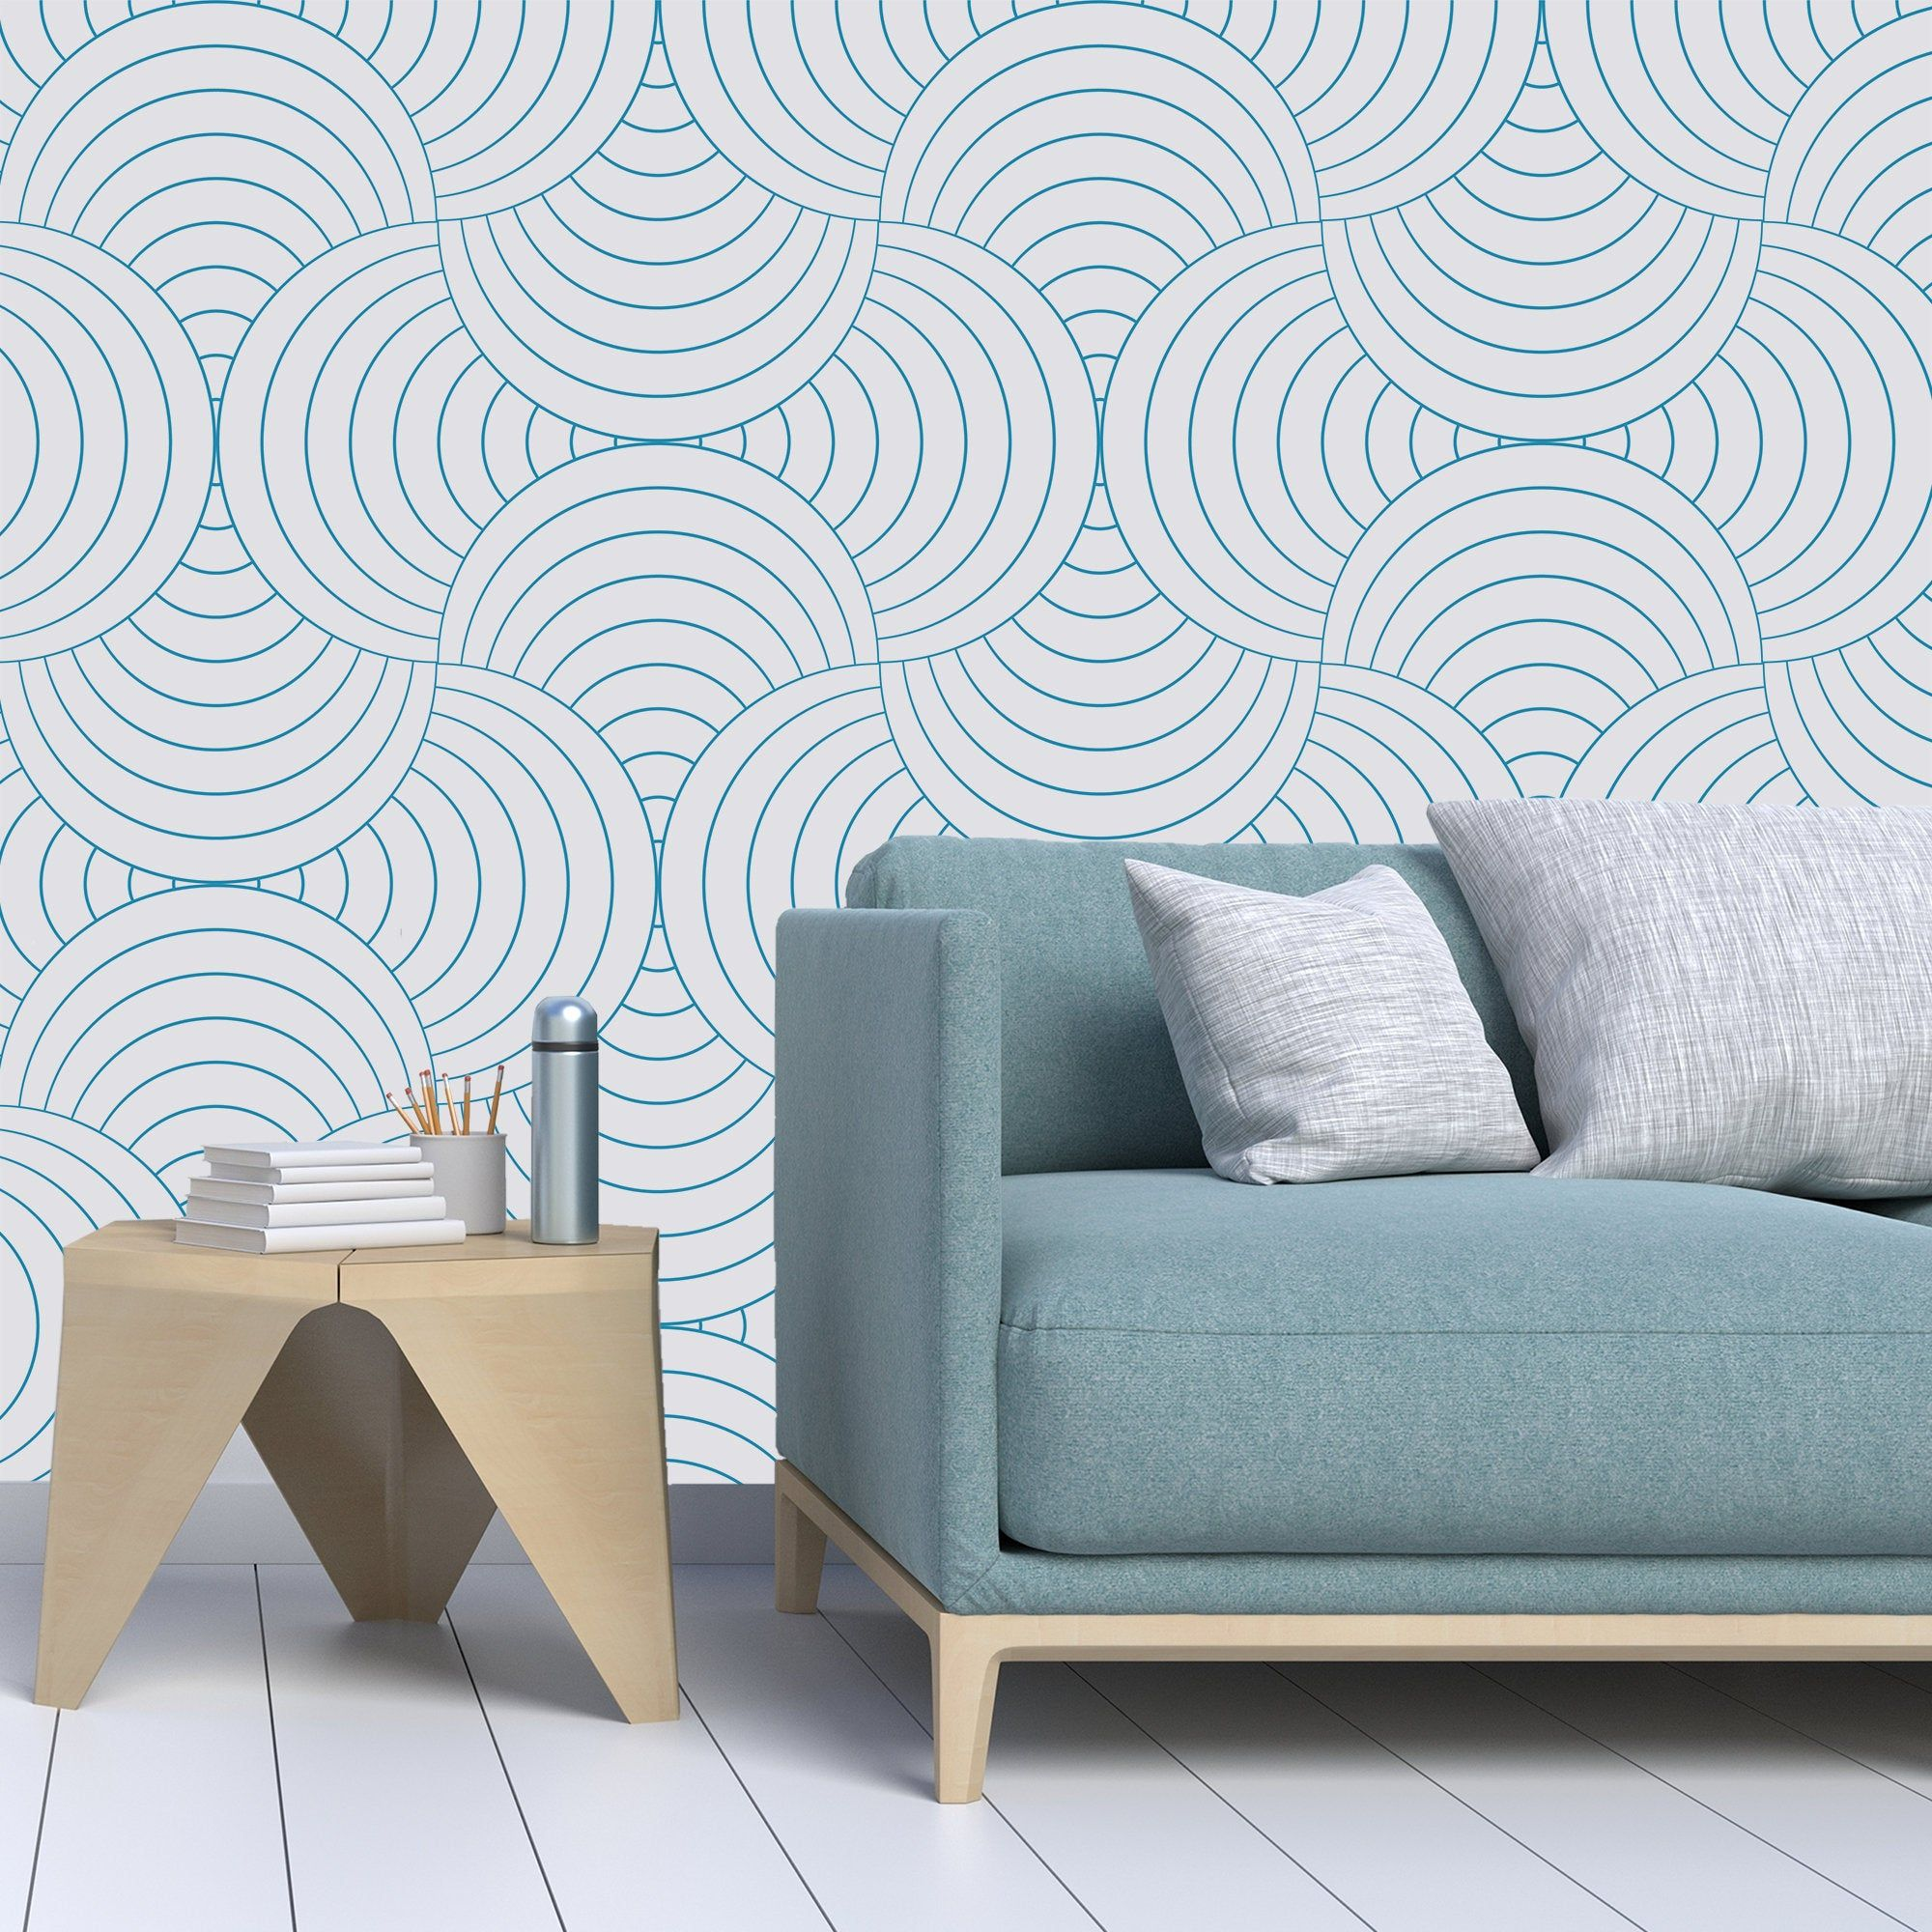 Removable Wallpaper Peel And Stick Wallpaper Wall Decor Etsy In 2020 Wallpaper Walls Decor Removable Wallpaper Wall Wallpaper